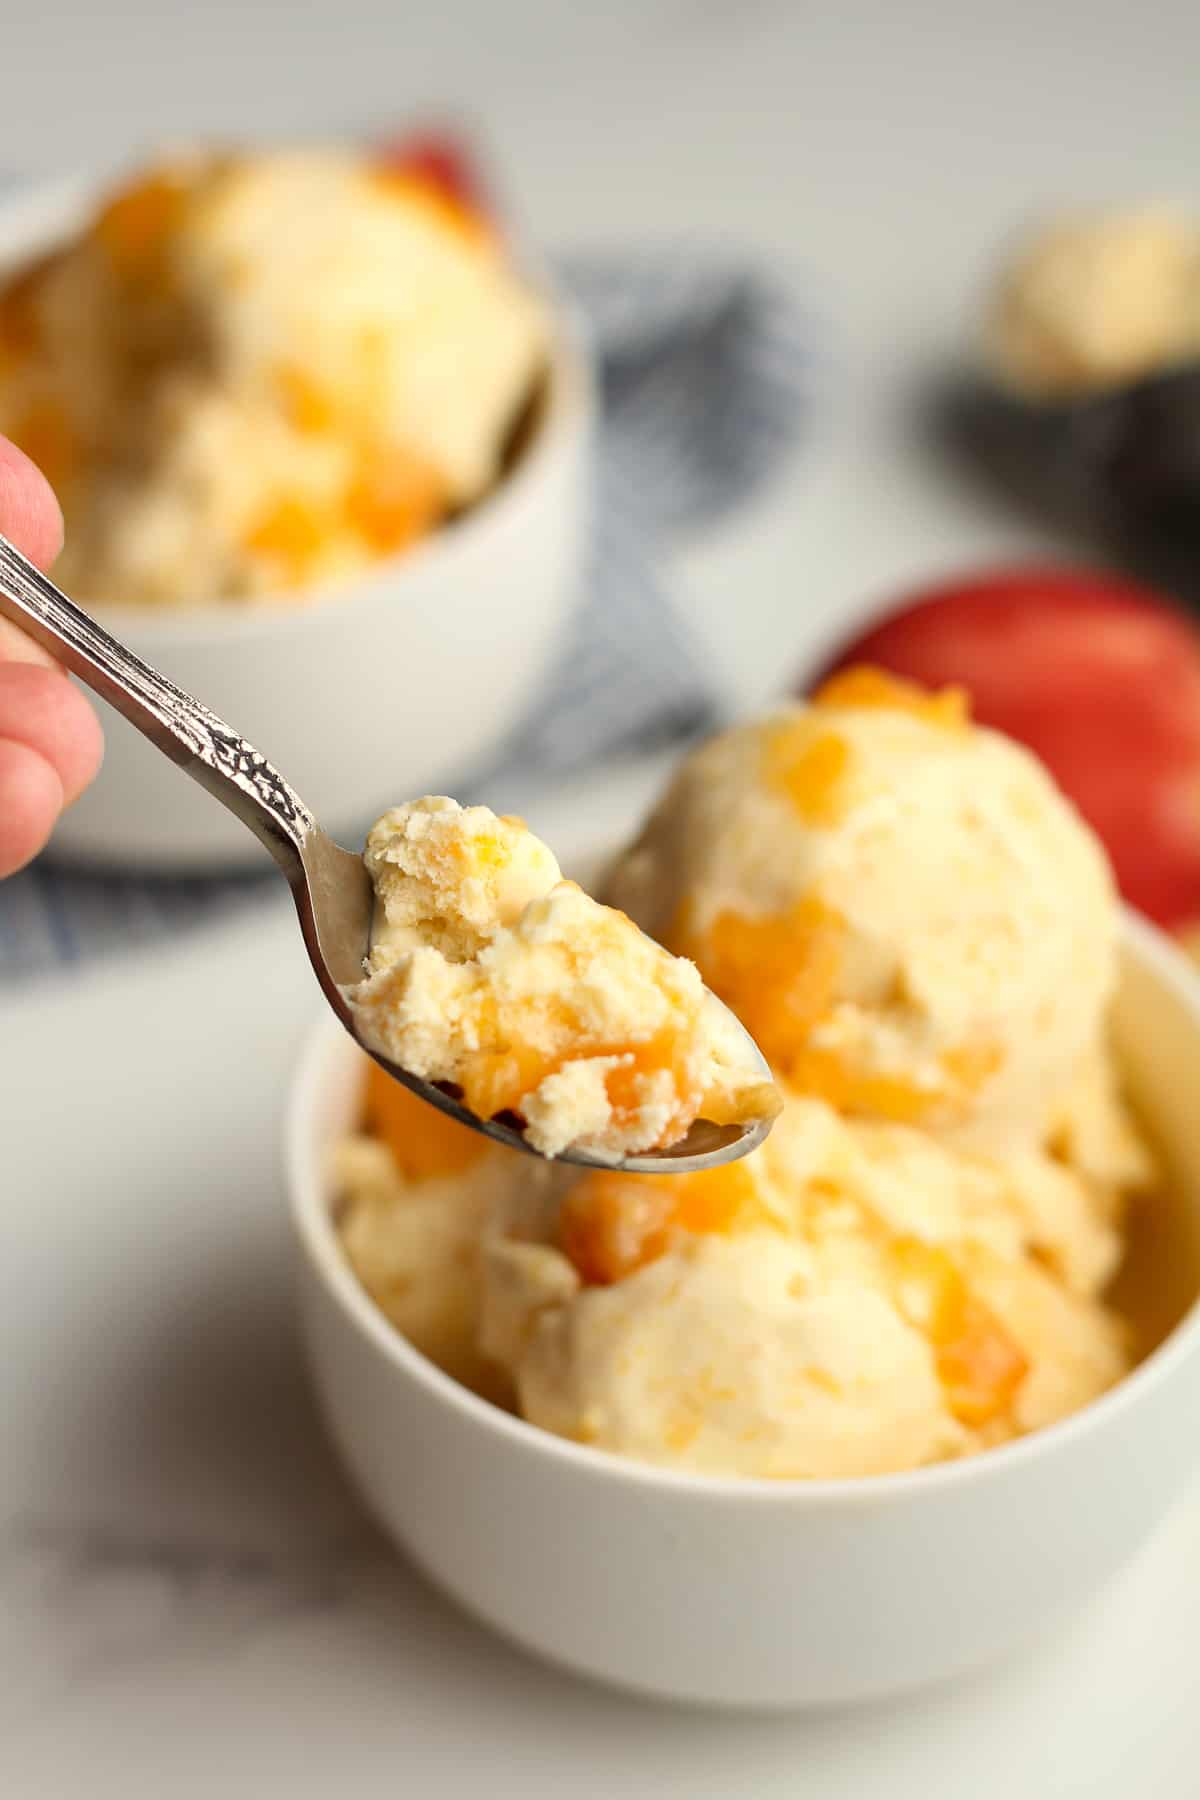 A spoonful of homemade peach ice cream, by a bowl.